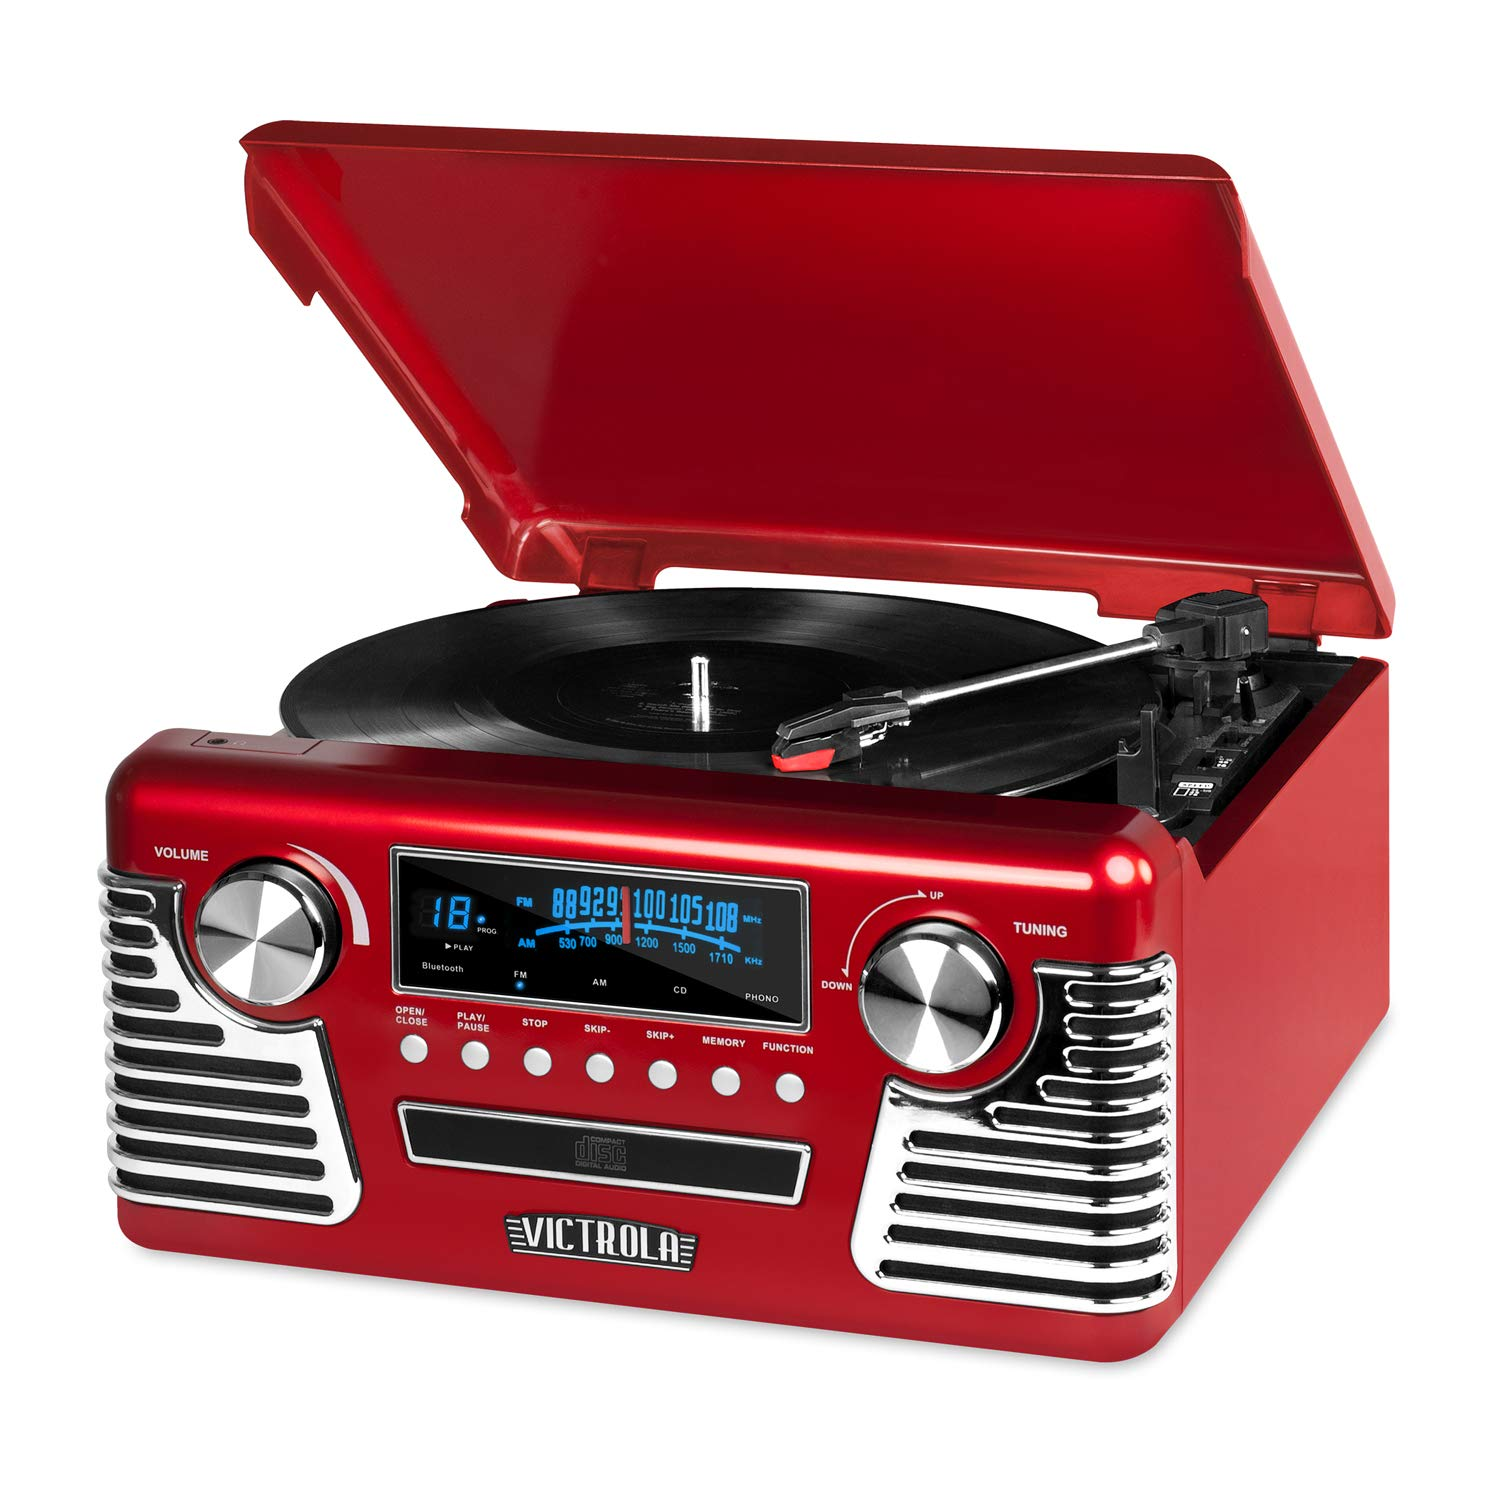 Victrola 50's Retro 3-Speed Bluetooth Turntable with Stereo, CD Player and Speakers, Red by Victrola